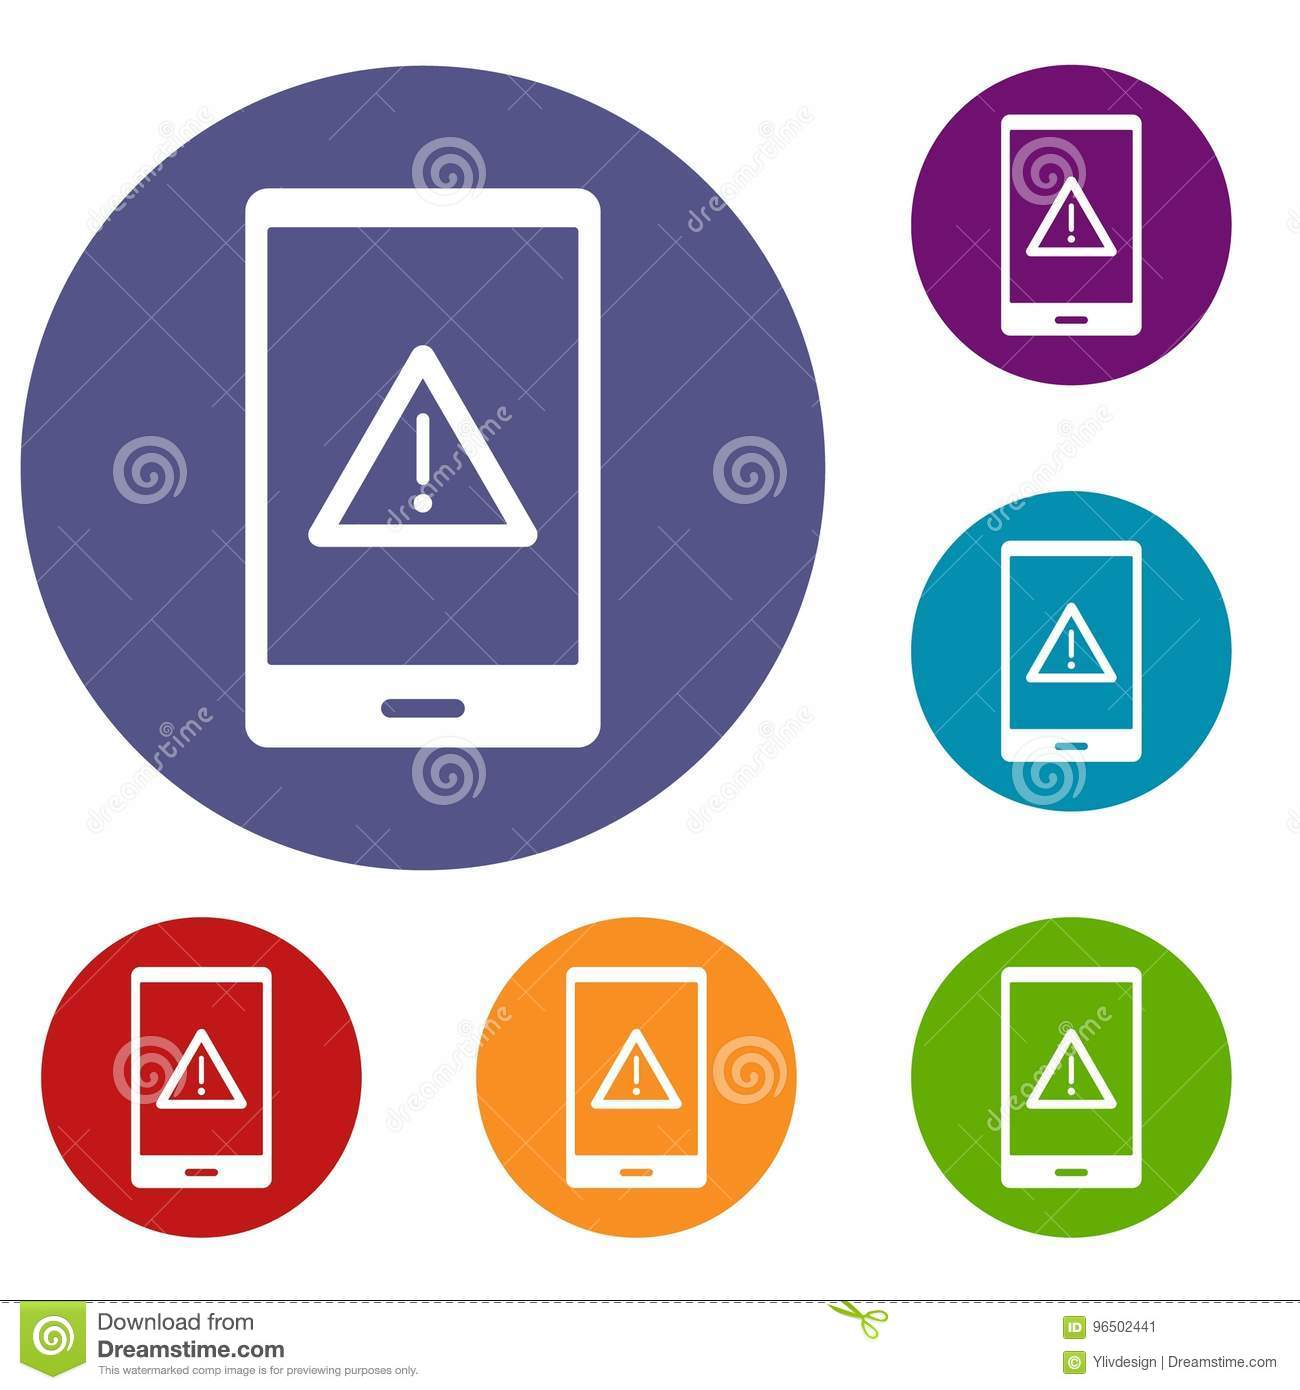 Not Working Phone Icons Set Stock Vector - Illustration of error, security: 96502441